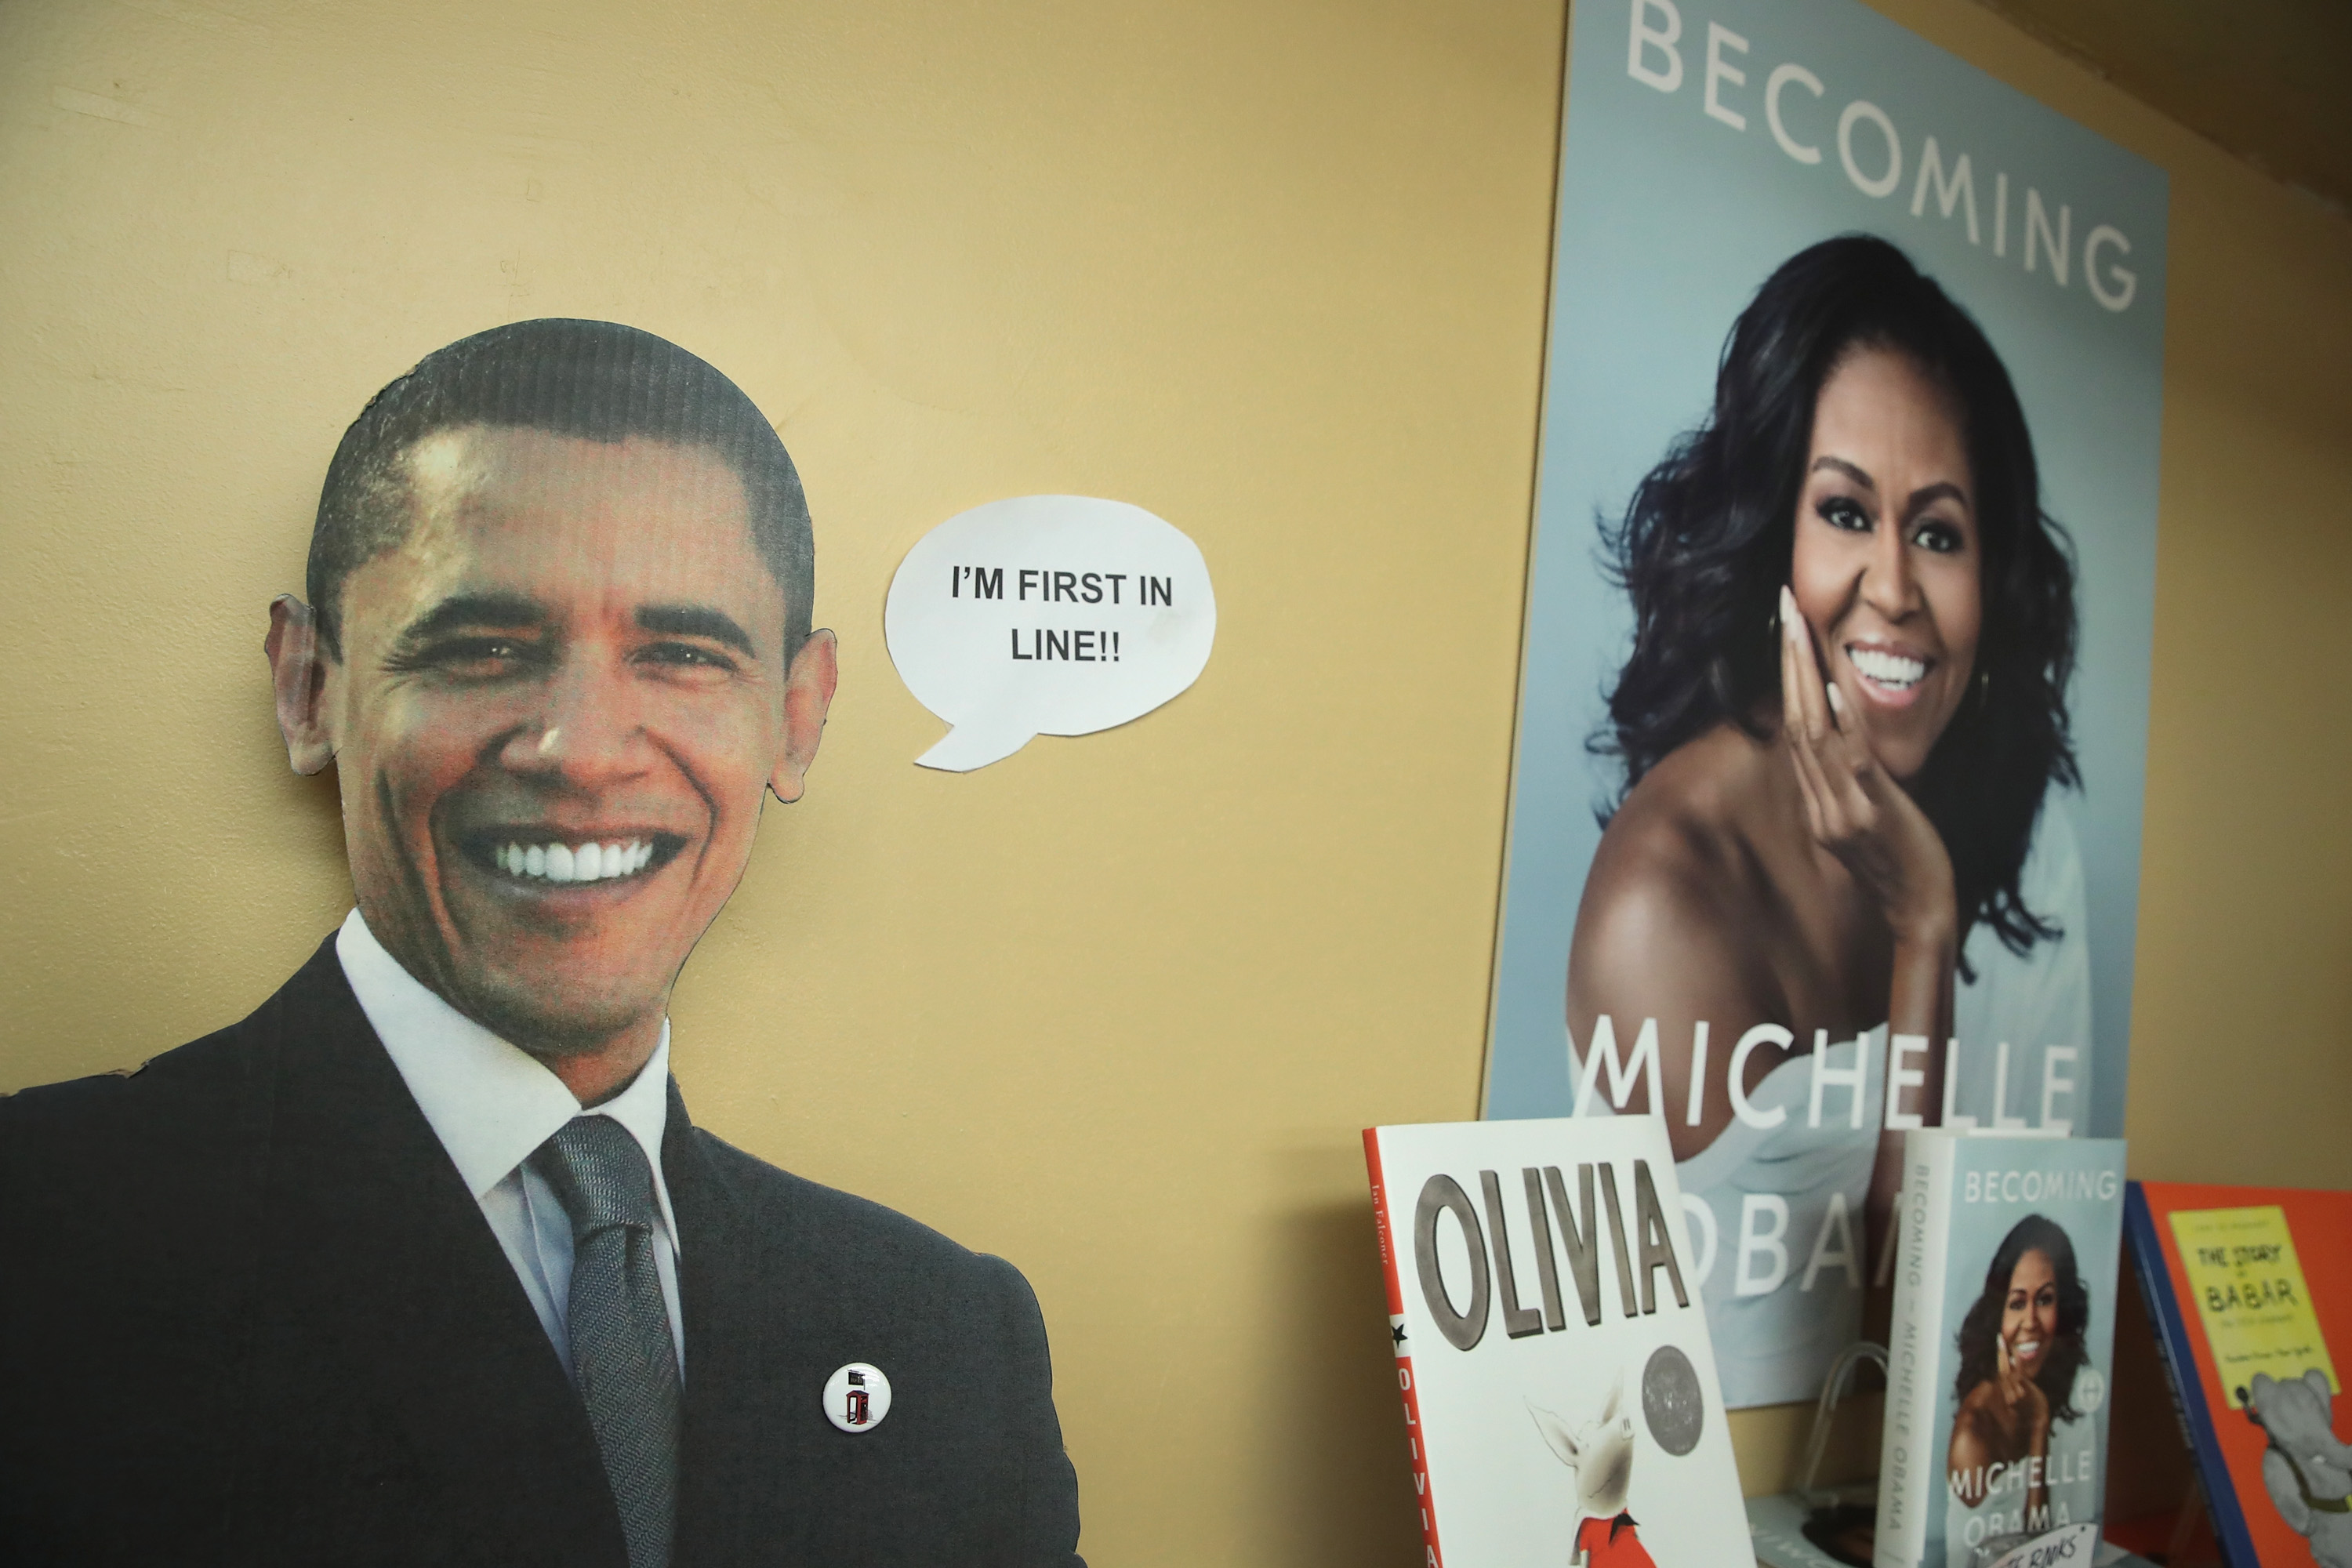 ' Becoming', a book by former first lady Michelle Obama, is displayed at the 57th Street Books bookstore on November 13, 2018, in Chicago, Illinois. (Getty)